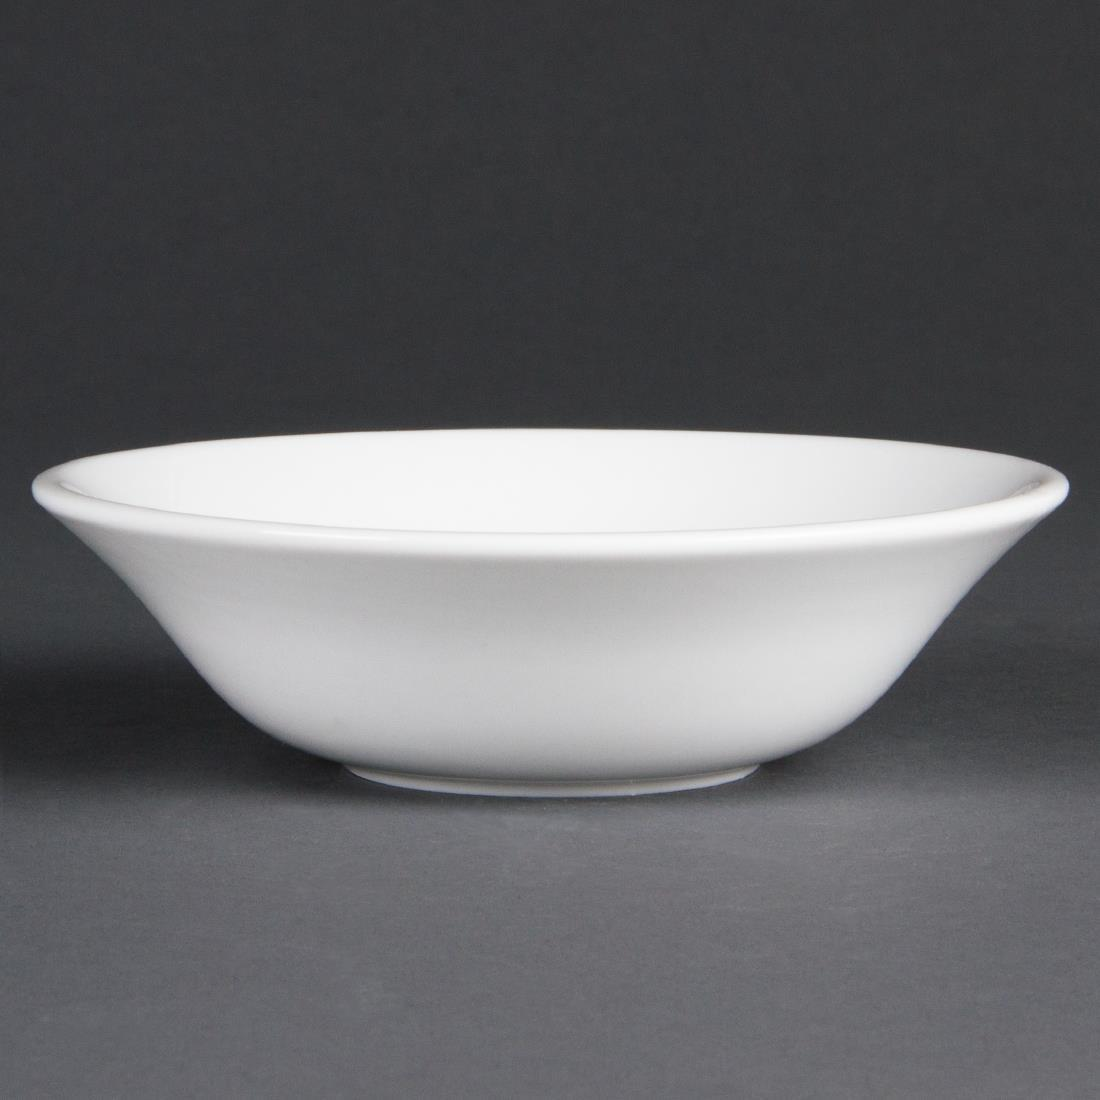 Olympia Whiteware Oatmeal Bowls 150mm